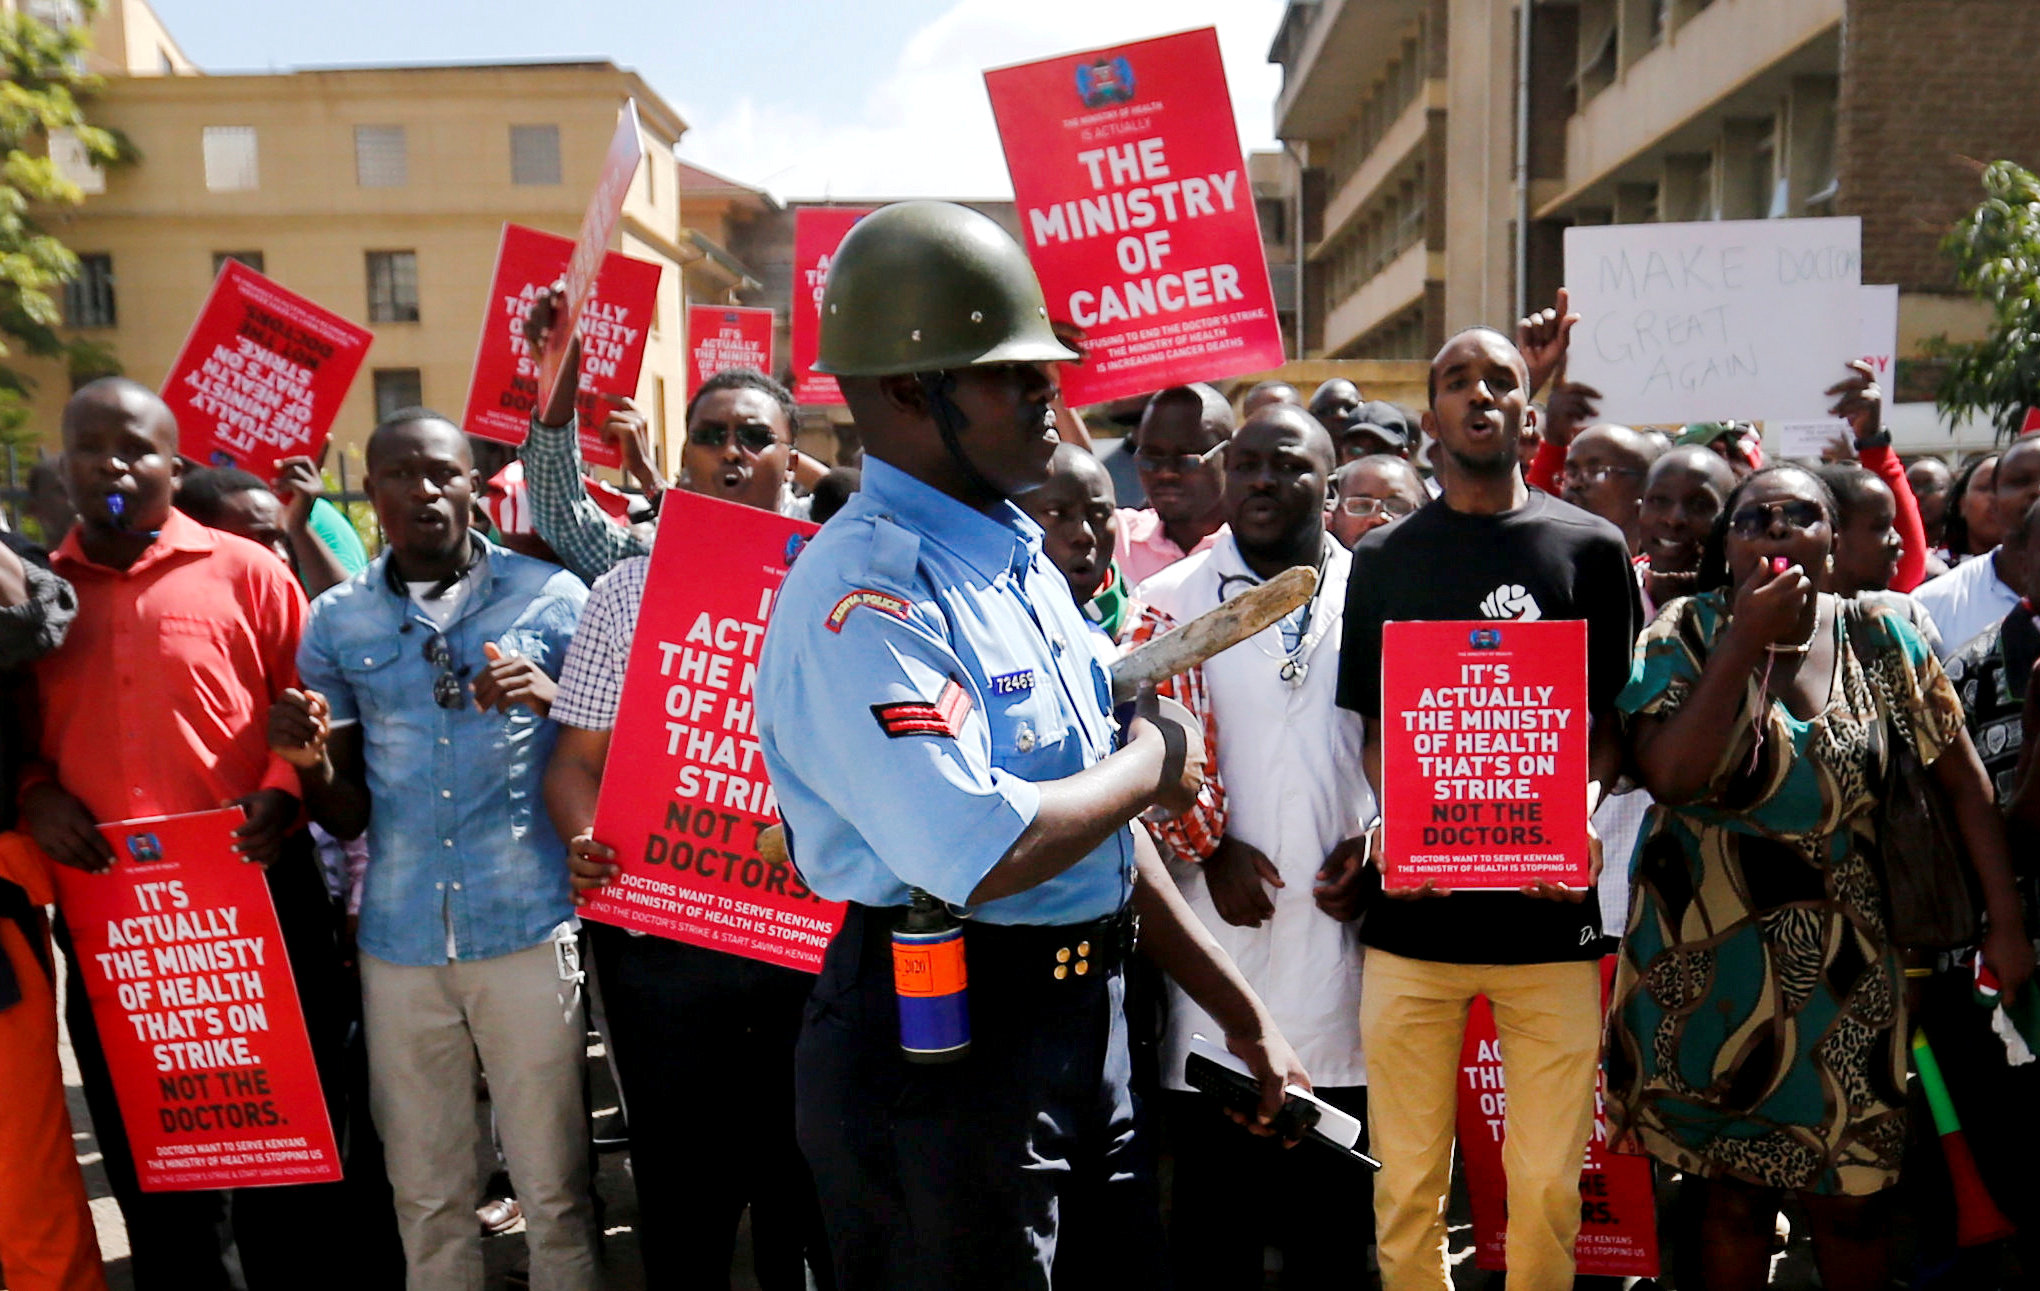 FILE PHOTO: A riot policeman stands guard as doctors chant slogans after their case to demand fulfilment of a 2013 agreement between their union and the government that would raise their pay and improve working conditions, was heard at the employment and labour relations courts in Nairobi, Kenya, February 13, 2017. REUTERS/Thomas Mukoya/File Photo